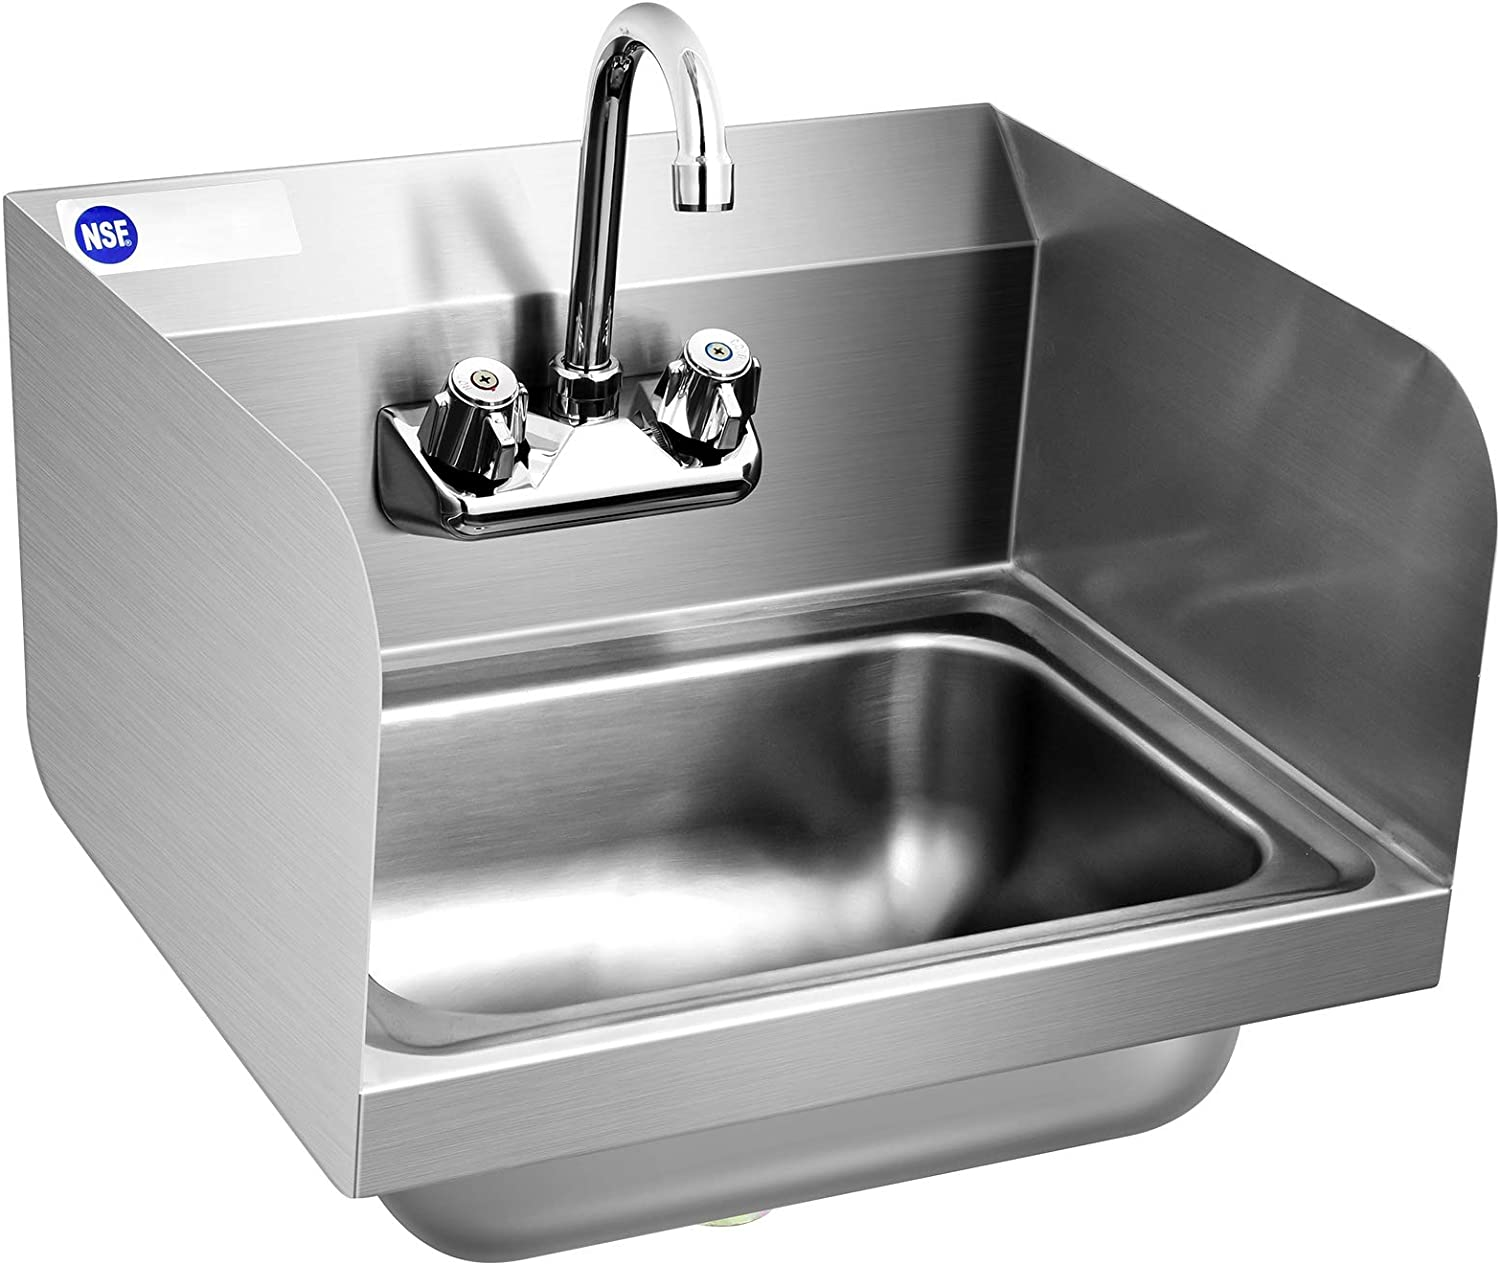 Stainless Steel Sink for Washing with Faucet & Splash Guard, Commercial NSF Wall Mount Sink for Home Kitchen 17 x 15 Inch